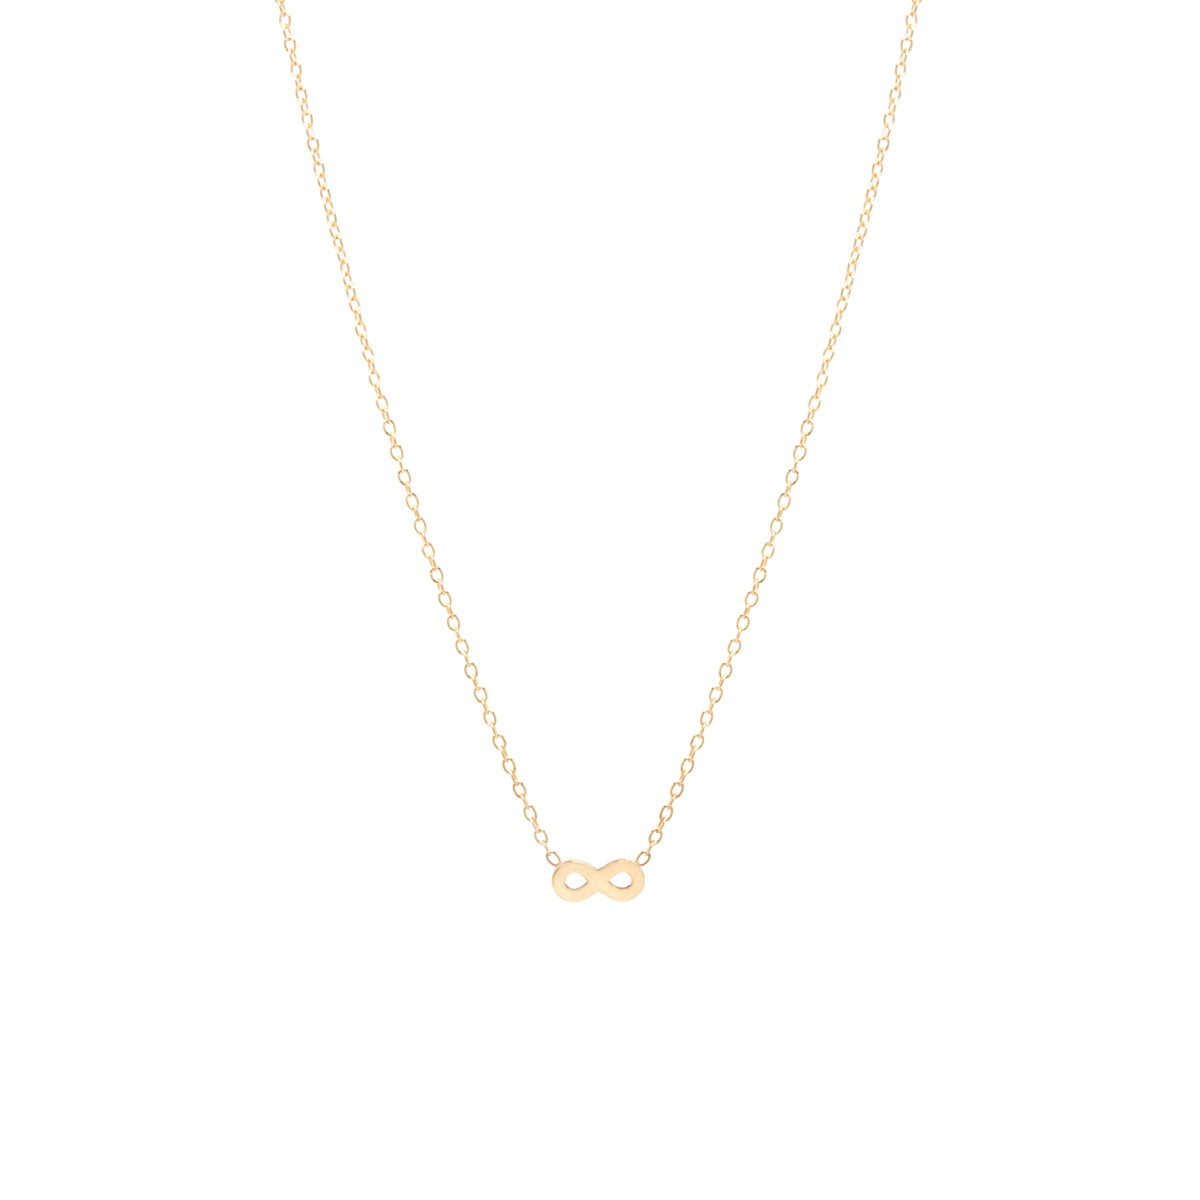 14k itty bitty infinity necklace